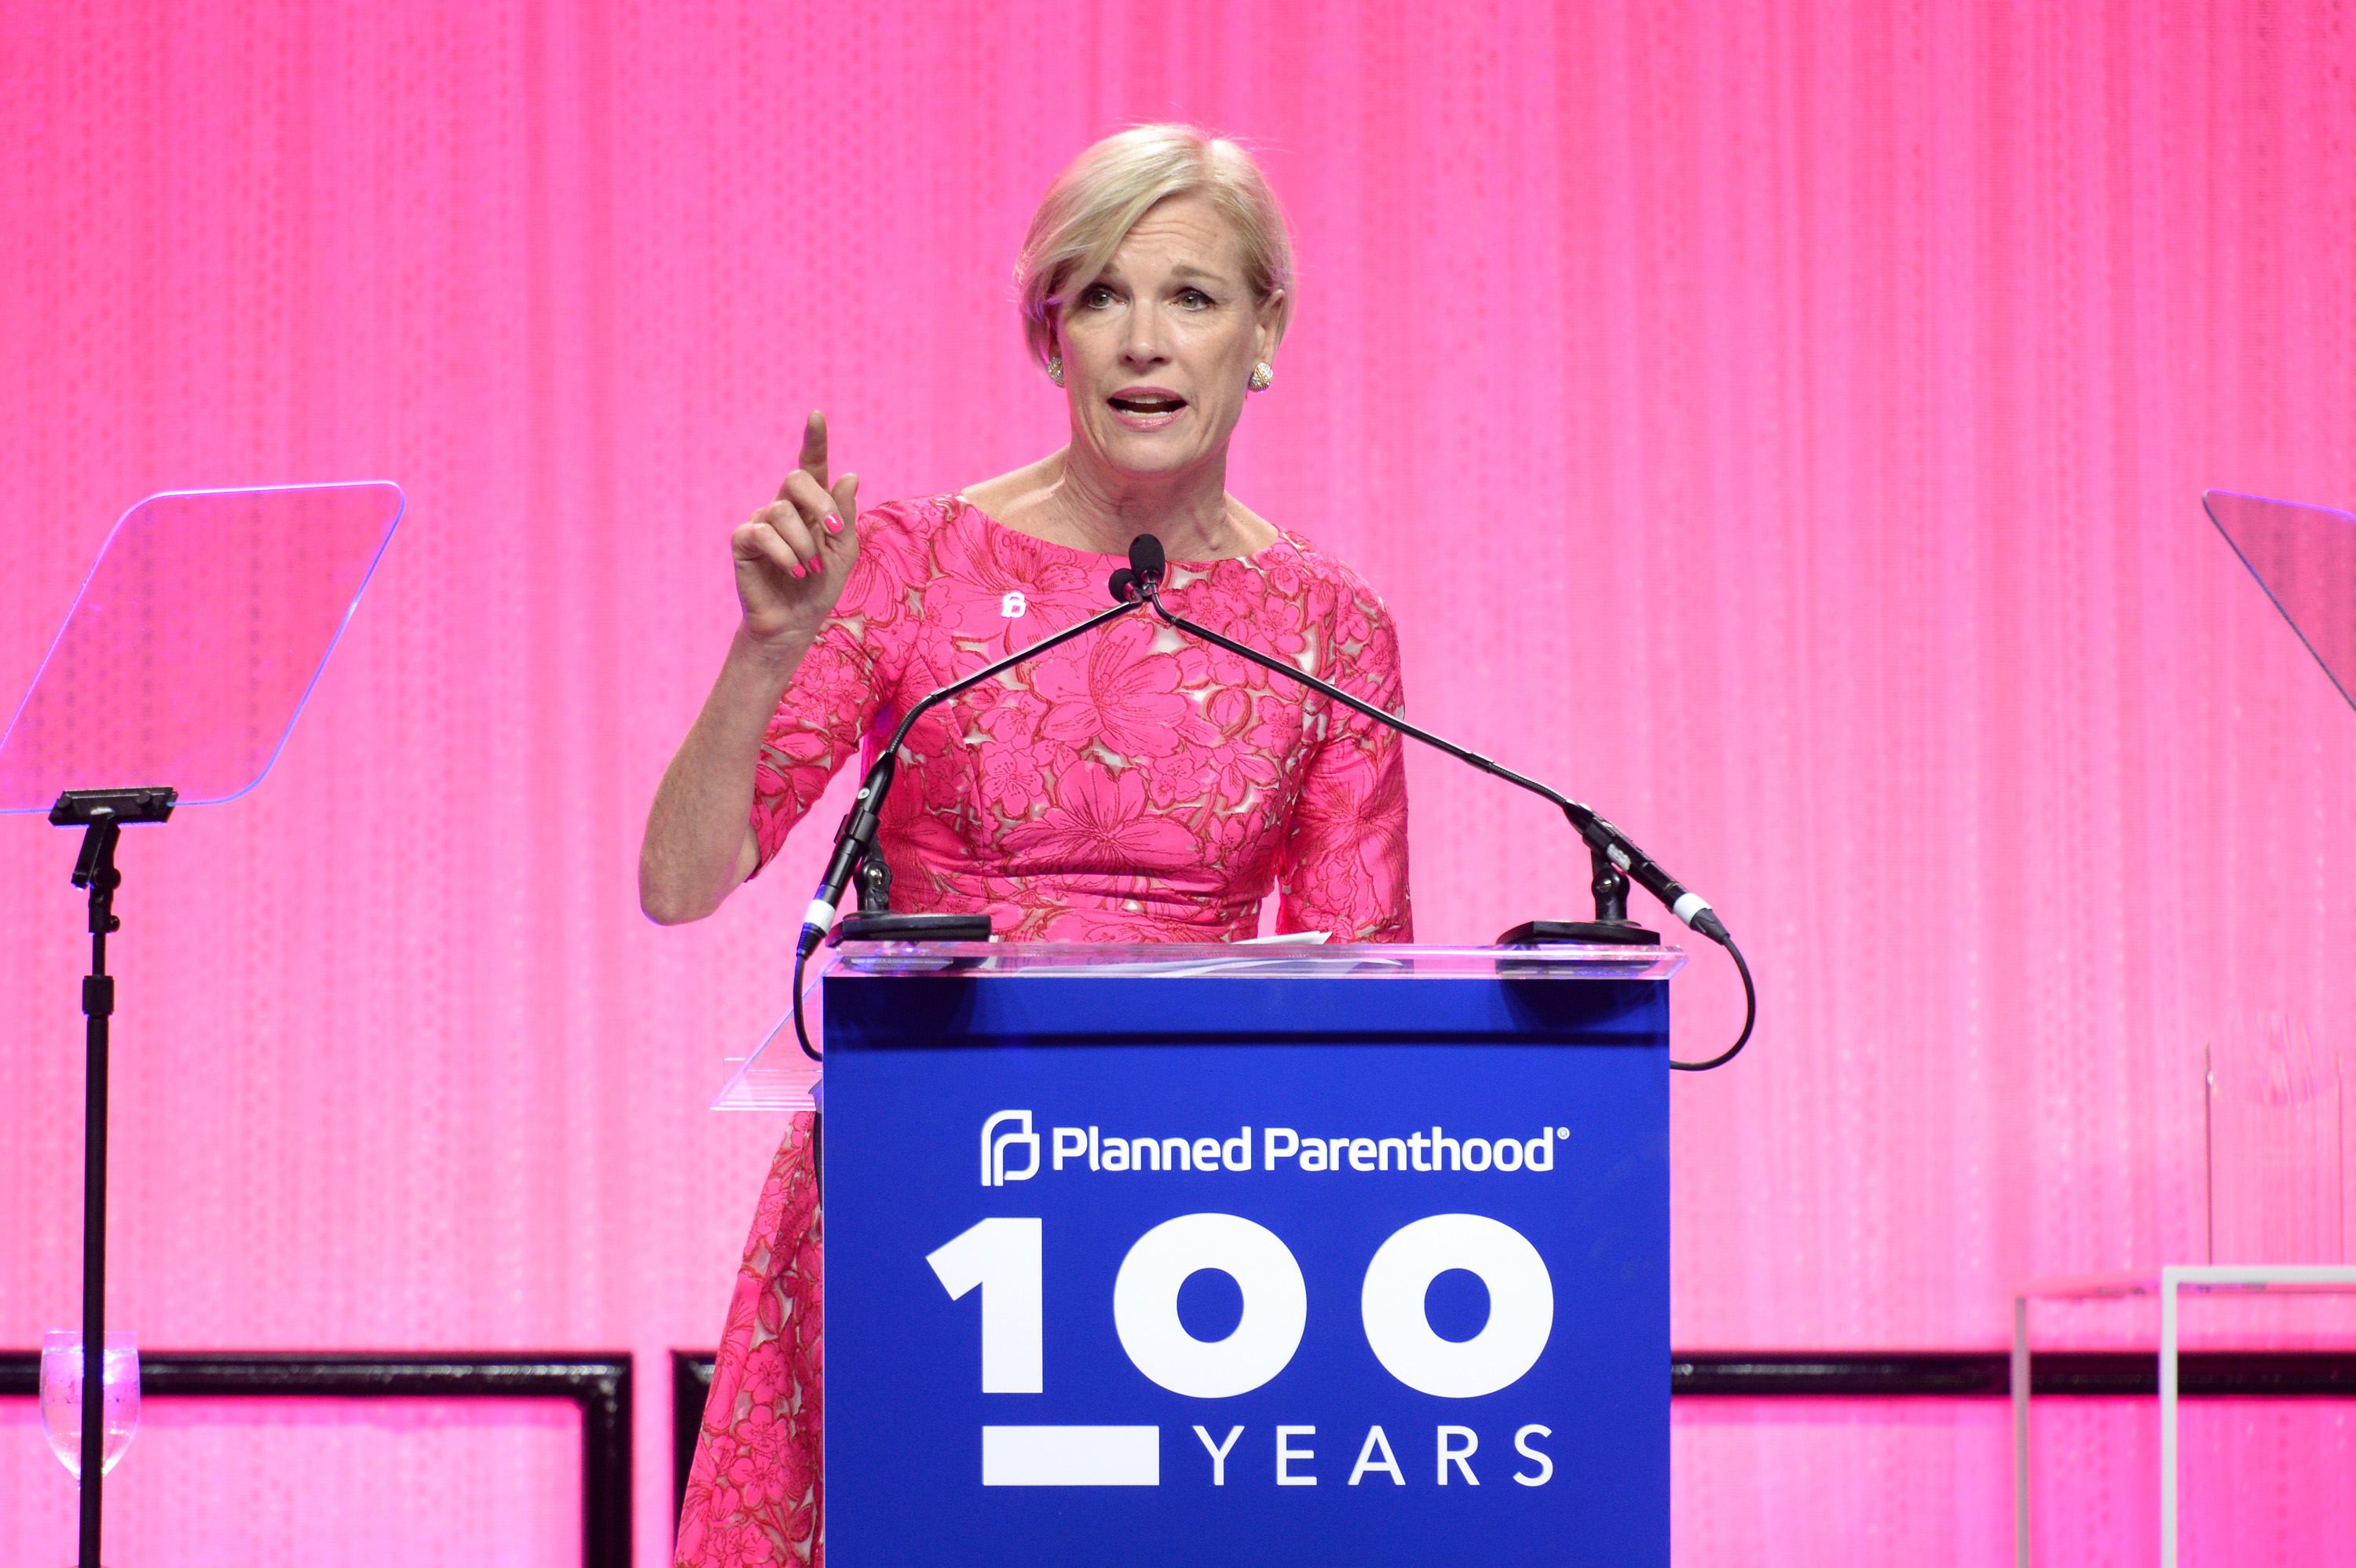 Cecile Richards speaks at the Planned Parenthood 100th Anniversary Gala on May 2, 2017 in New York City